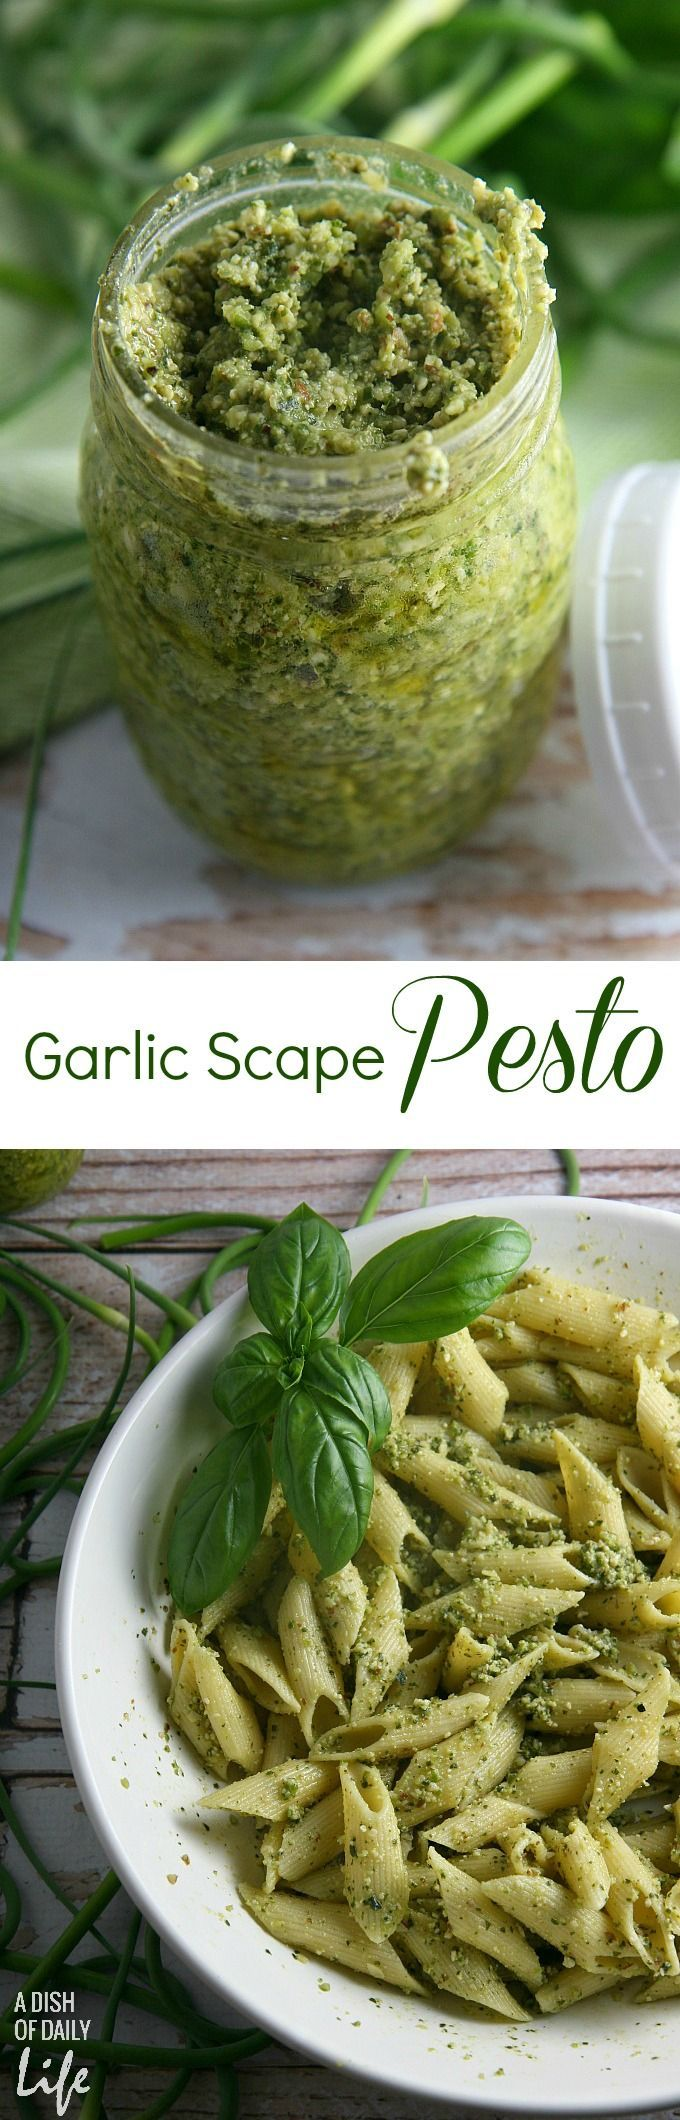 Garlic Scapes Pesto Sauce...a healthy dinner recipe the whole family will love! Serve this vegetarian farmer's market favorite over pasta or chicken, spread on sandwiches or paninis, pizza, or even as an appetizer dip for bread! Freezes well too.